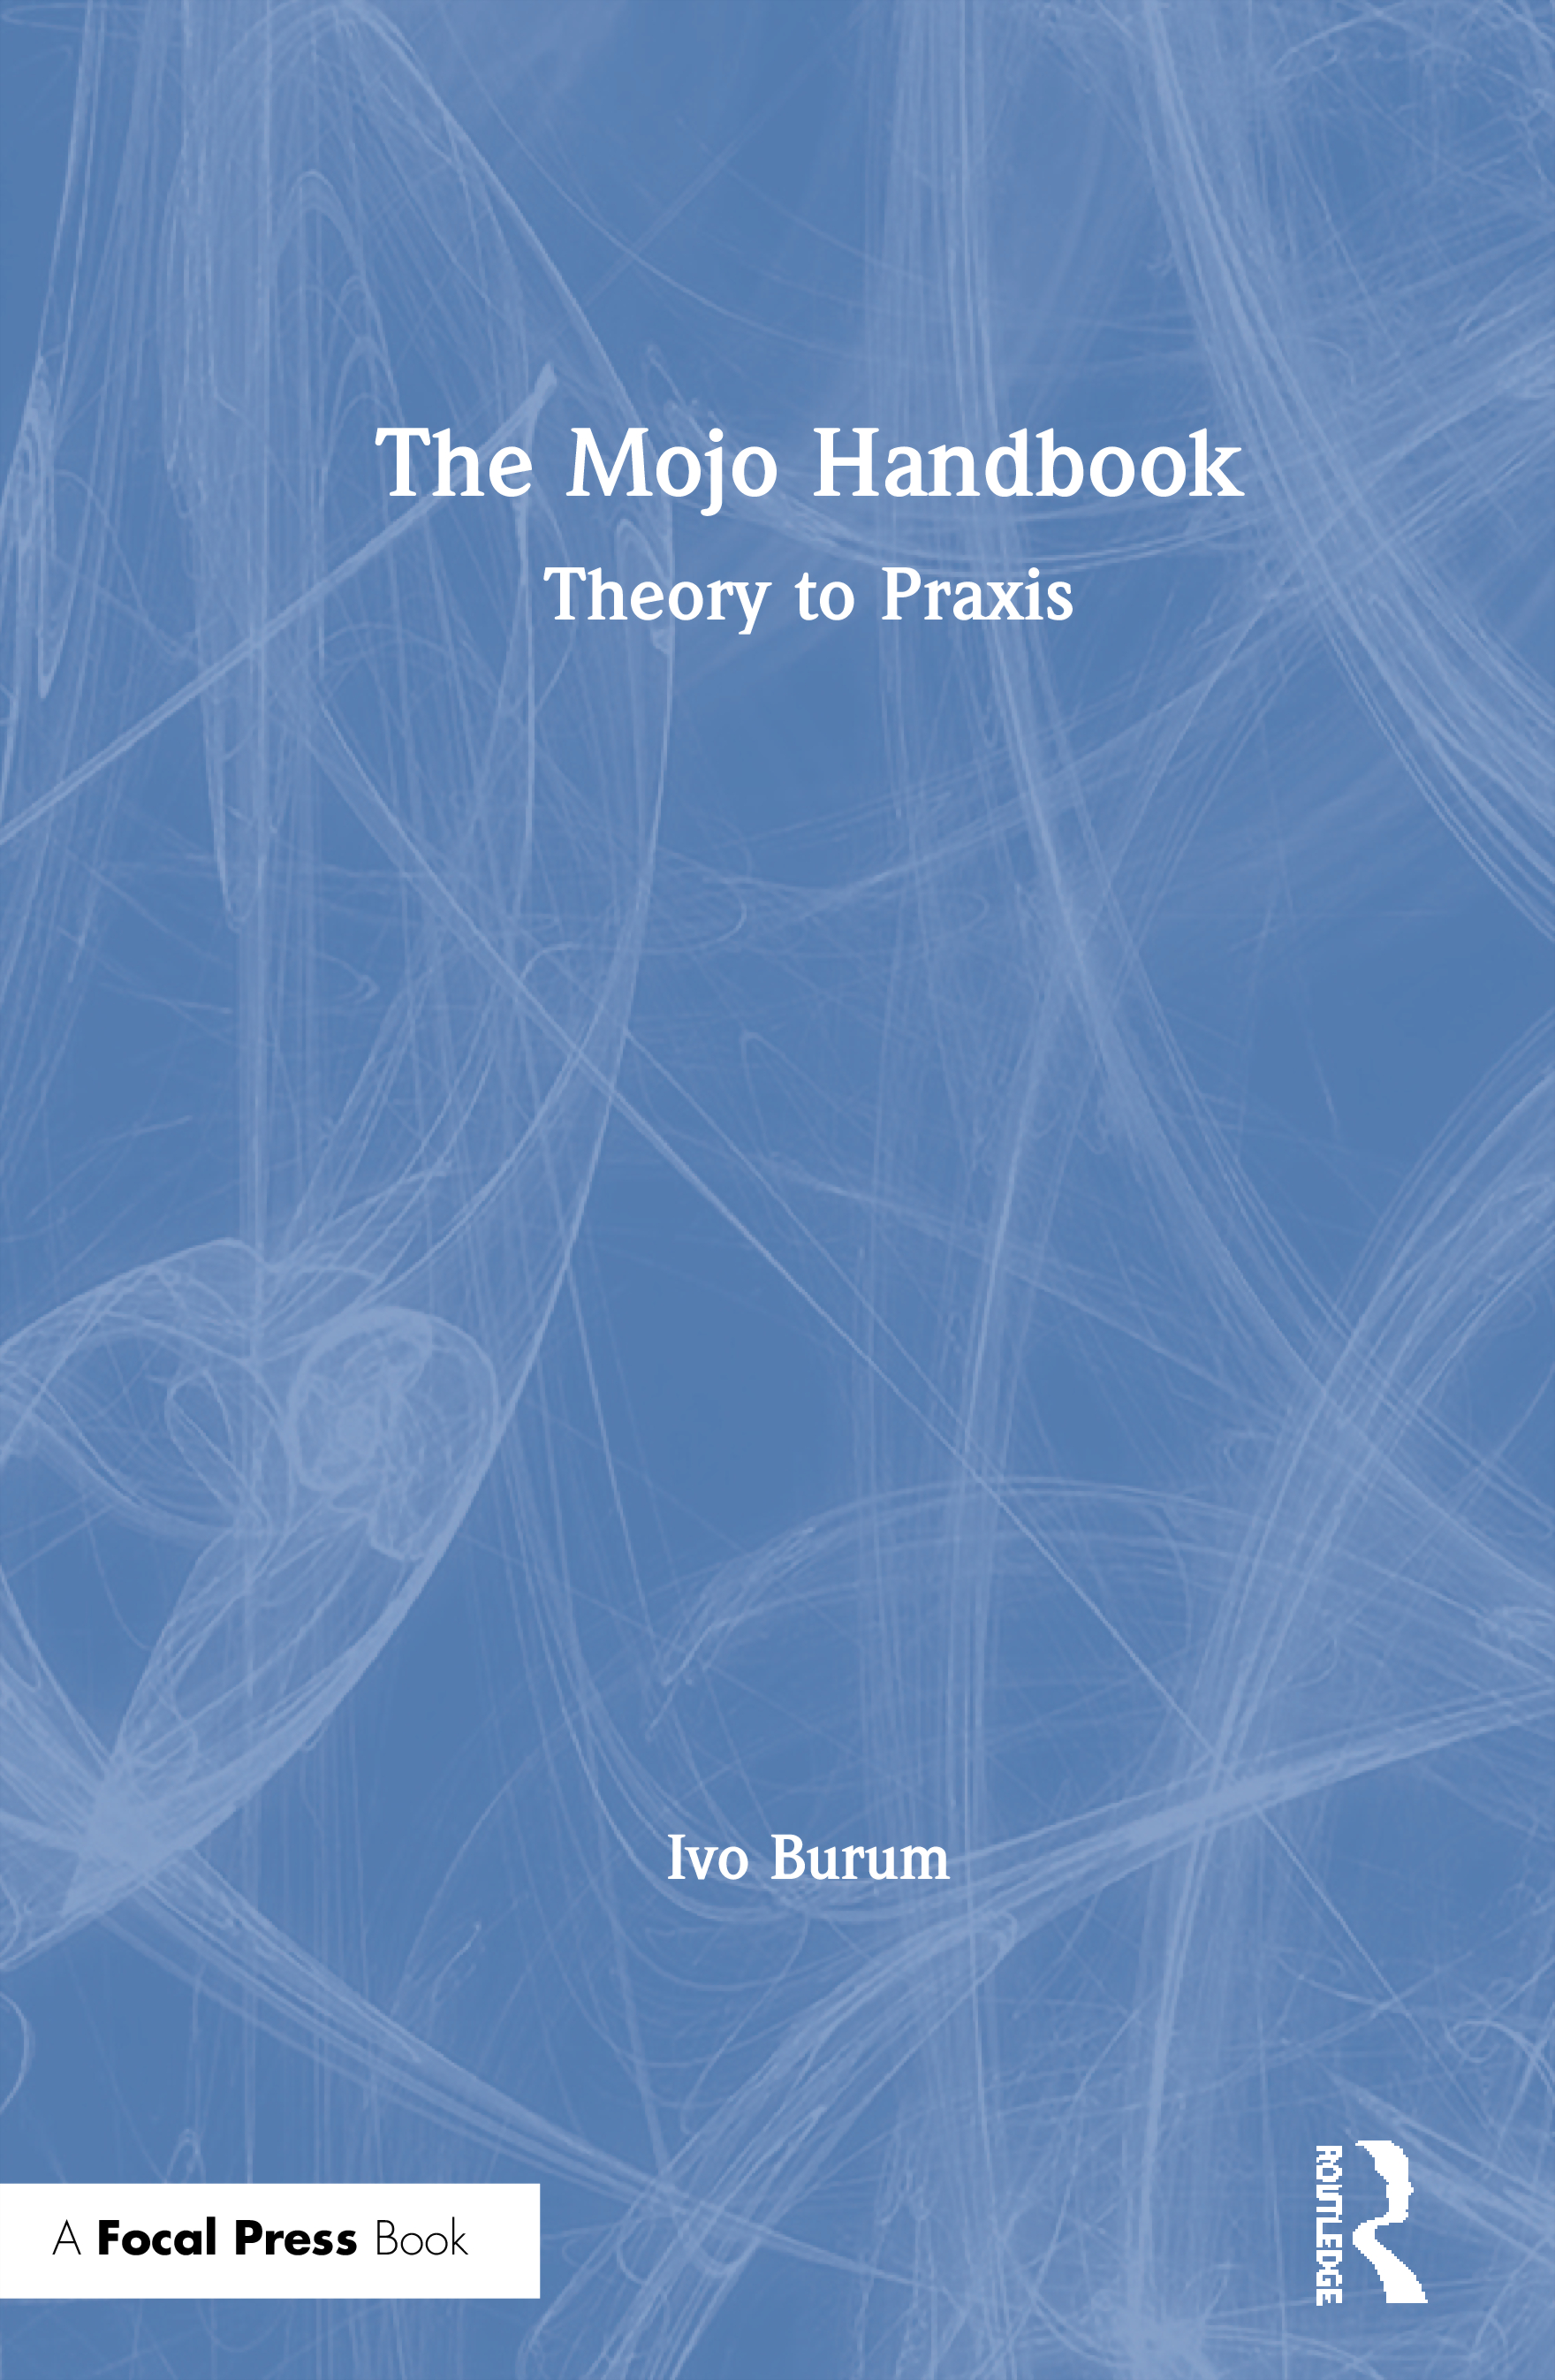 The Mojo Handbook: Theory to Praxis book cover